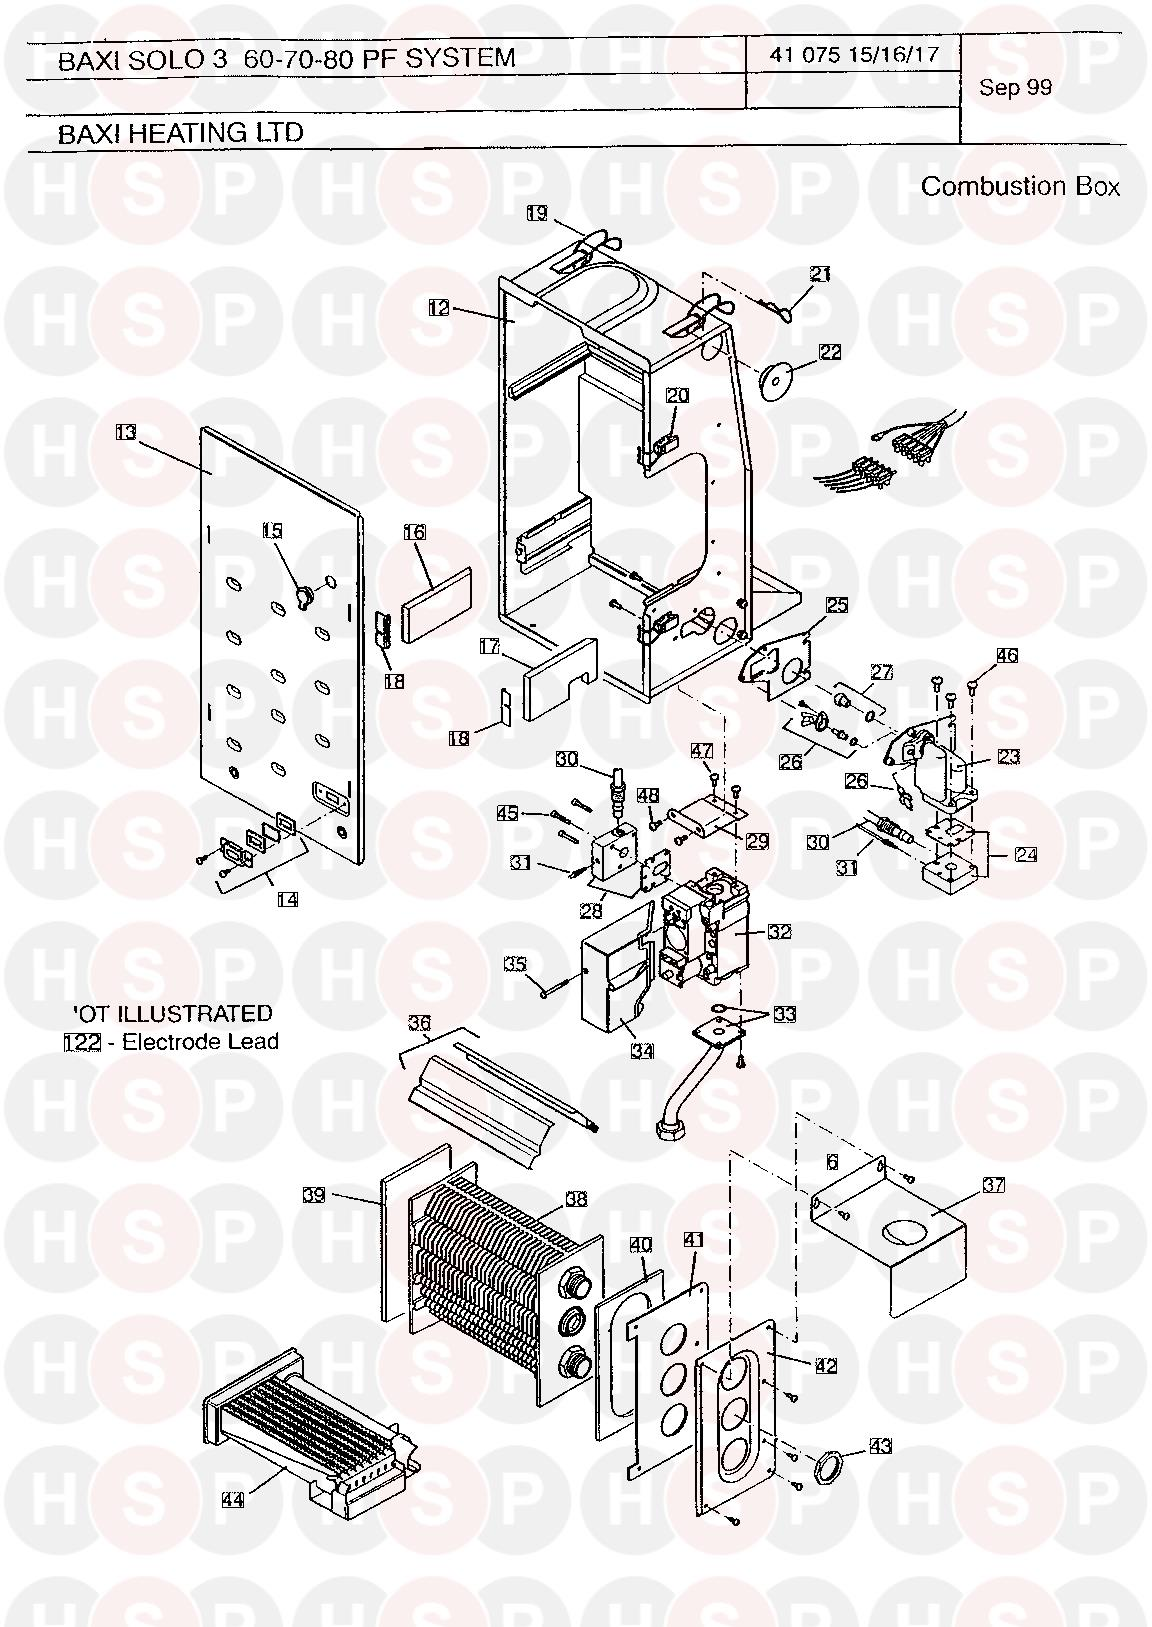 baxi 3 pf 60 system  combustion box  diagram